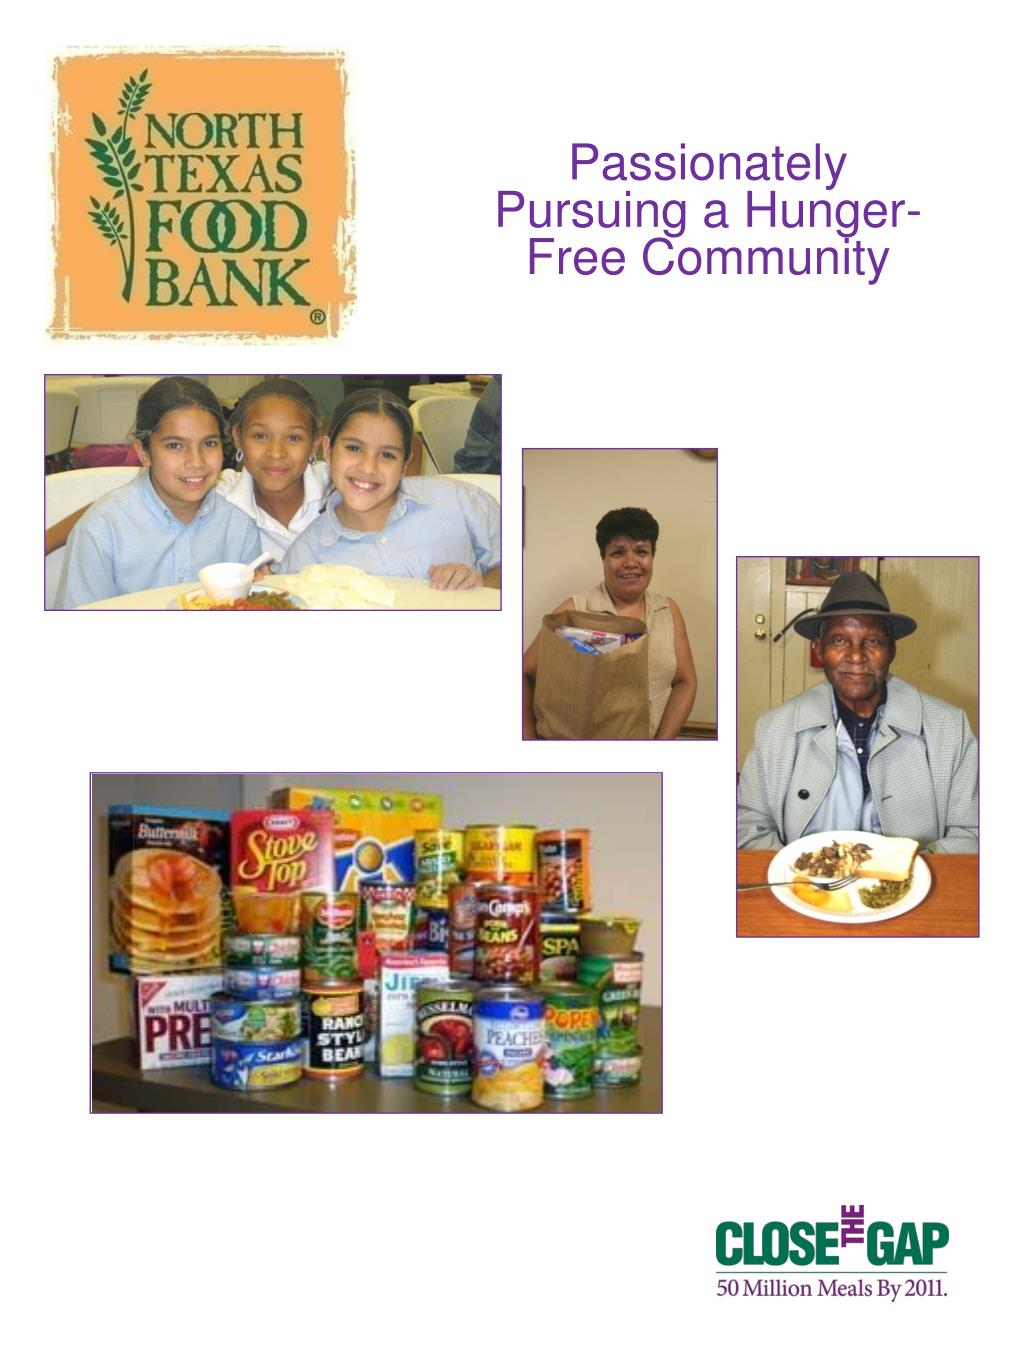 Passionately Pursuing a Hunger-Free Community